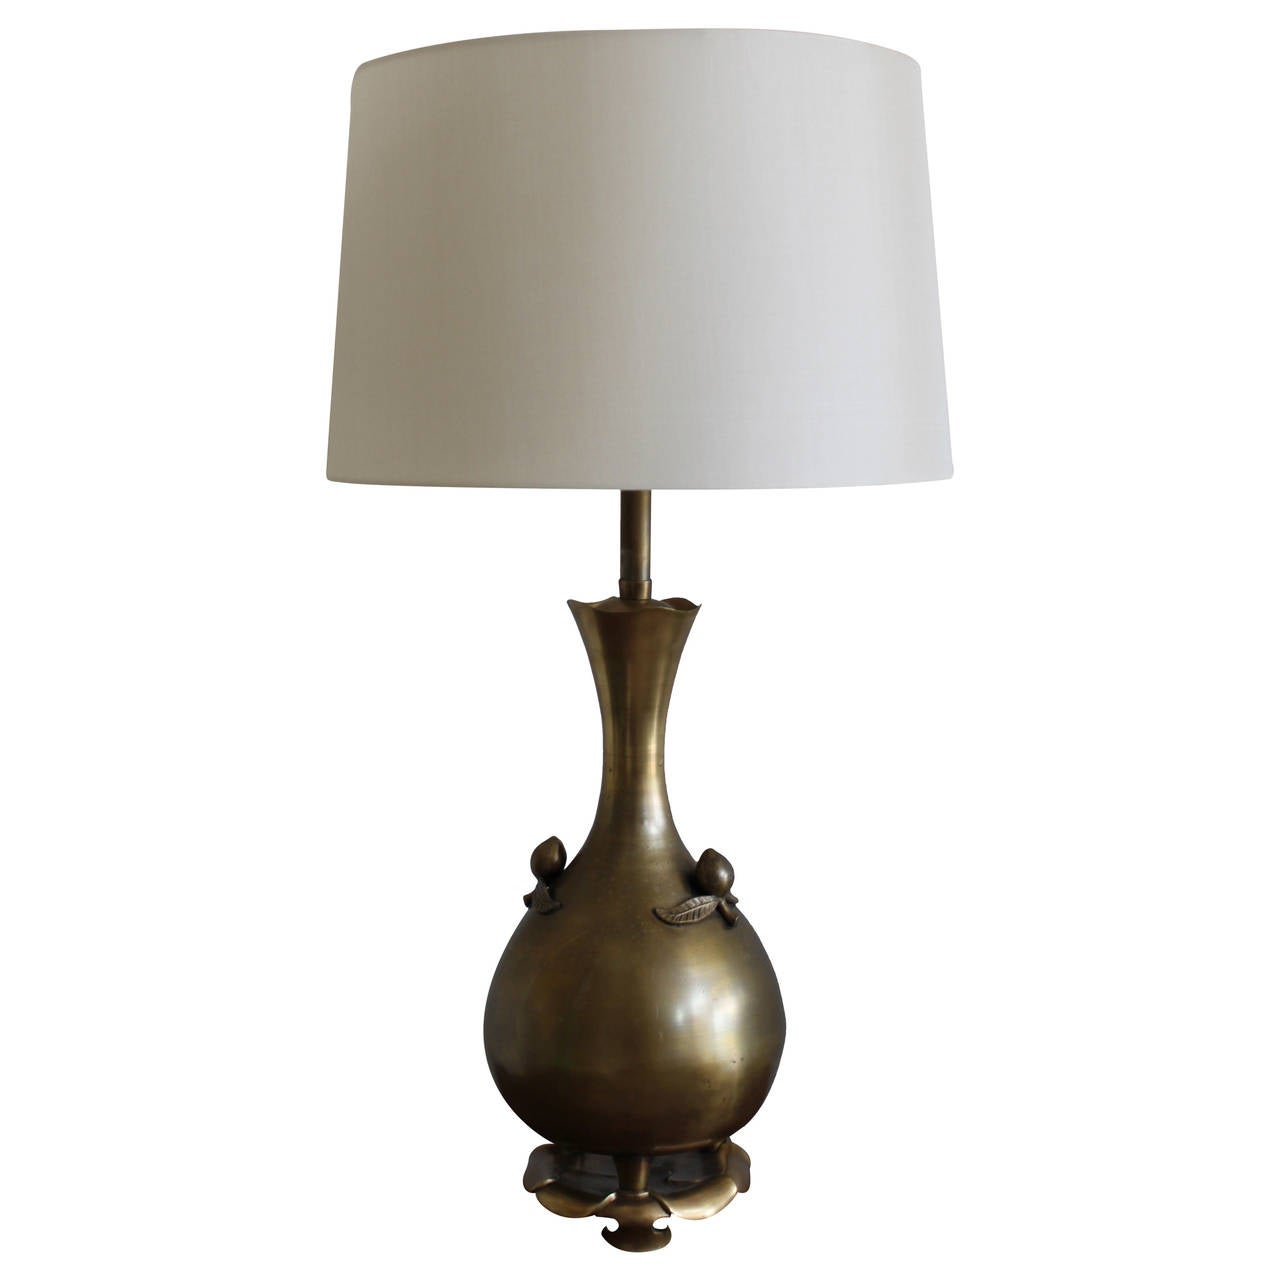 Mid-Century Modern Marbro Brass Lamp with Fruit on a Lotus Base